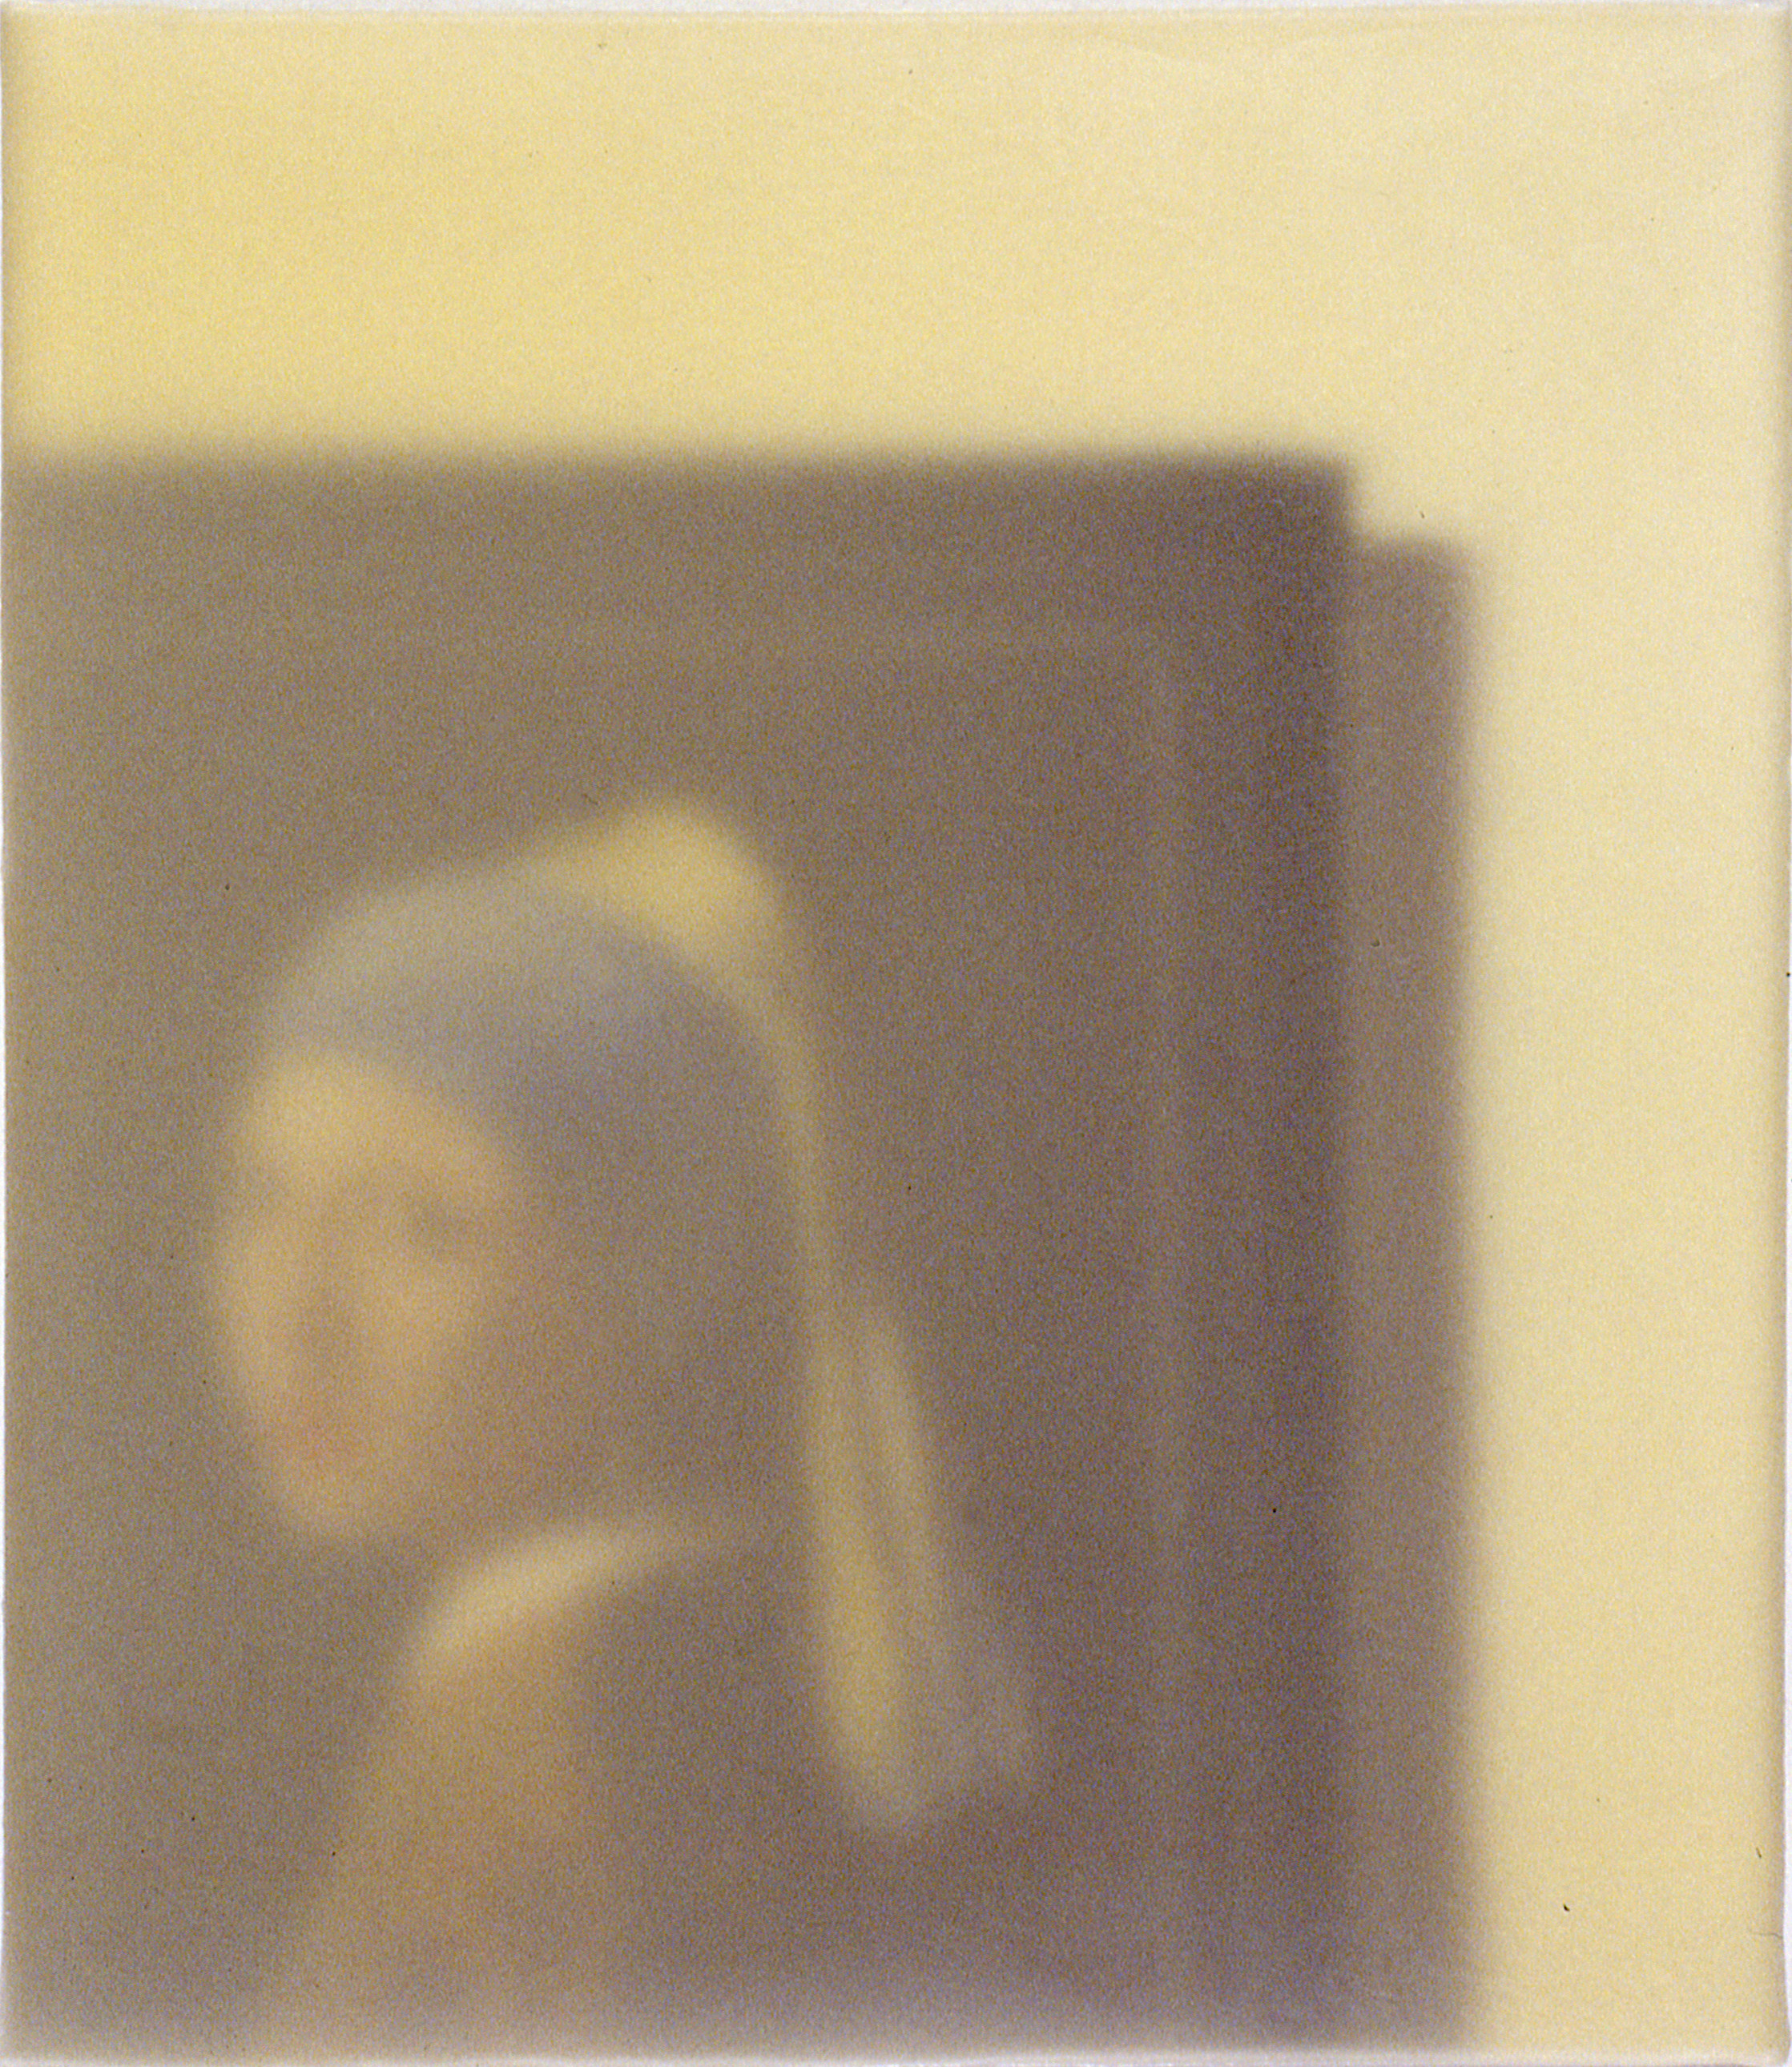 A blurred image of a painting hanging on a wall that depicts a woman wearing a turban and a pearl earring